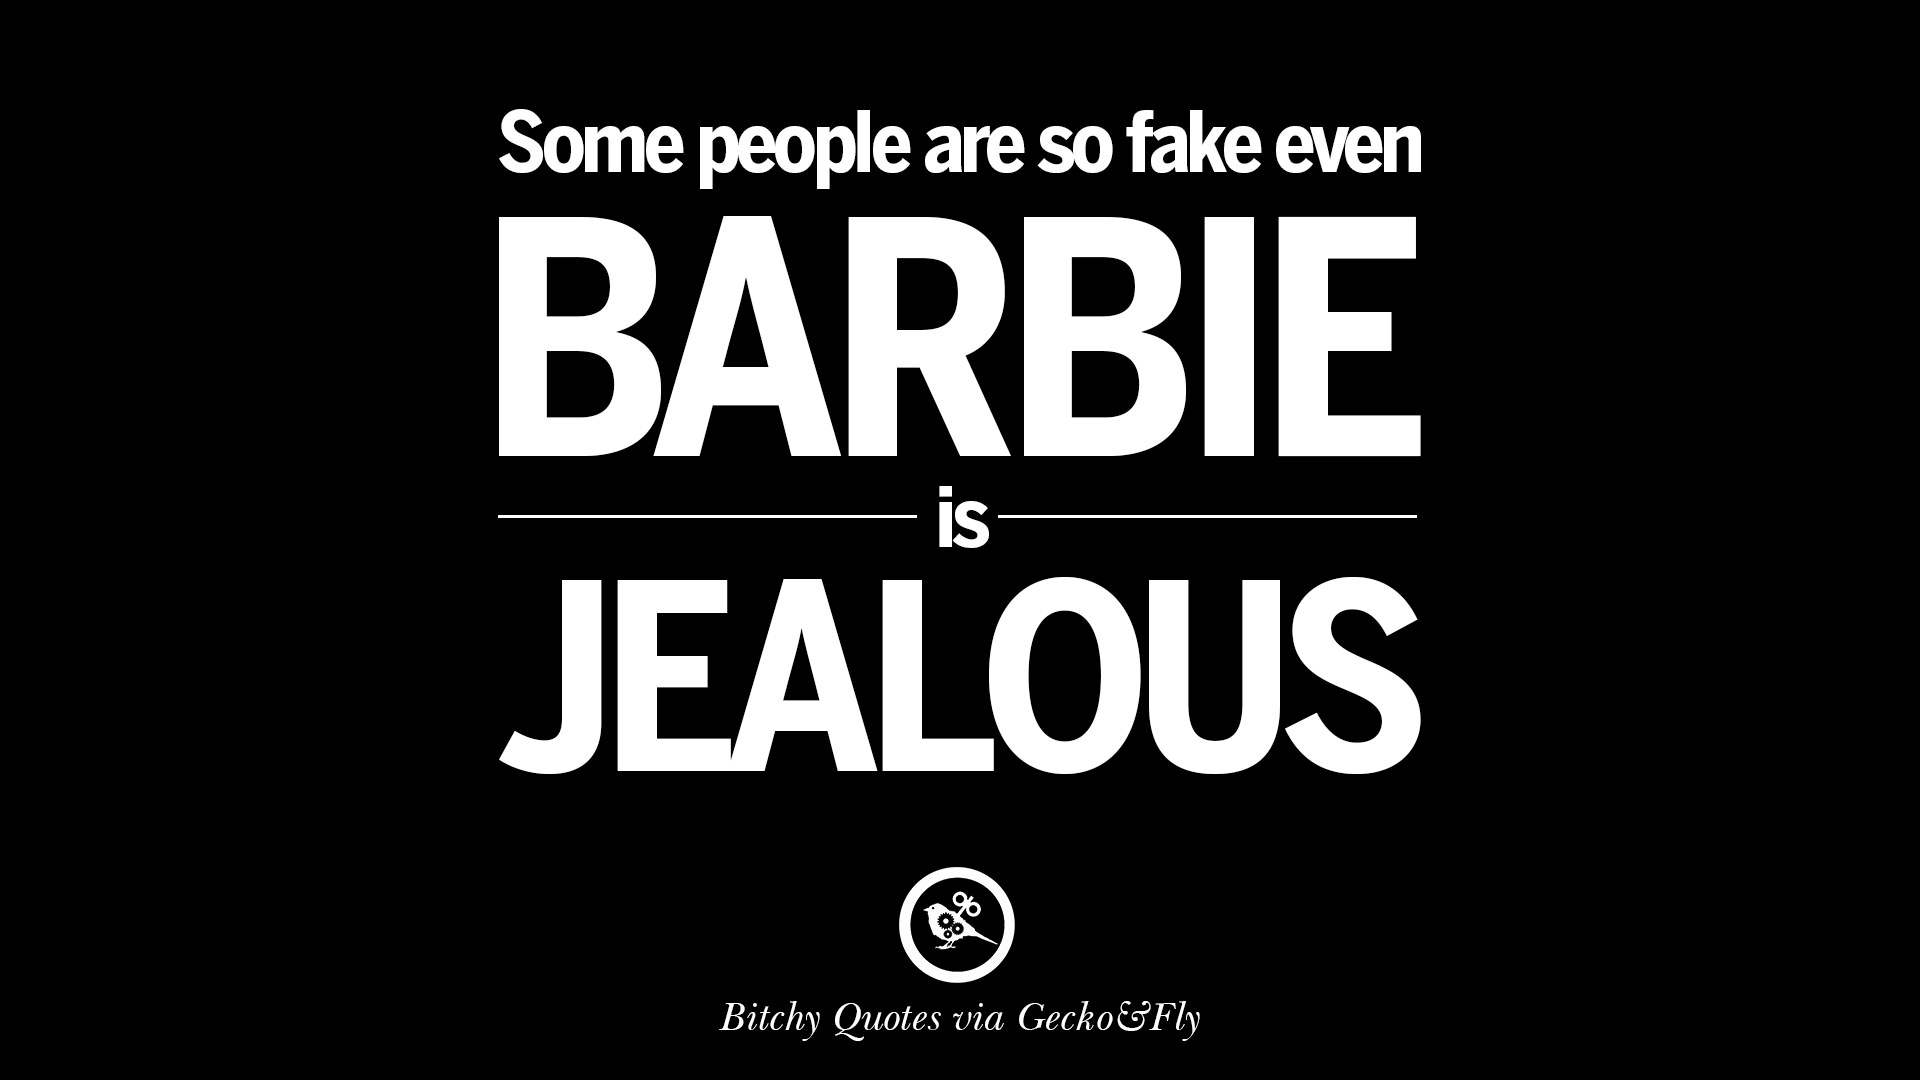 Bitch Quotes some people are so fake even Barbie is jealous